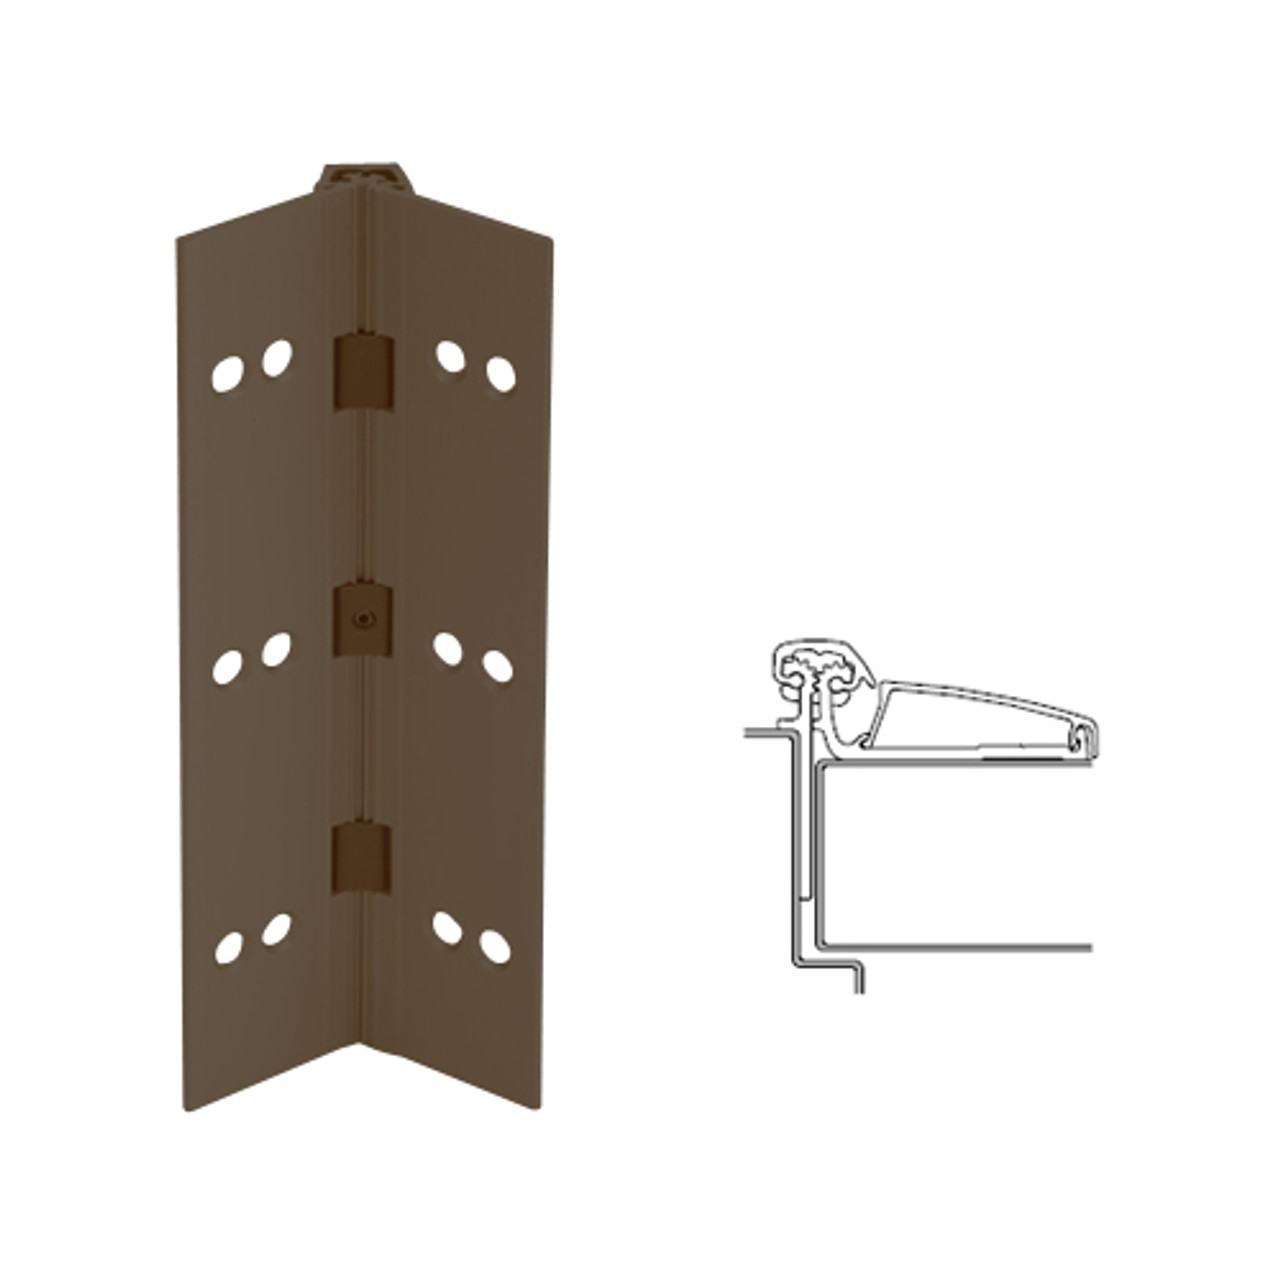 045XY-313AN-120-SECHM IVES Adjustable Half Surface Continuous Geared Hinges with Security Screws - Hex Pin Drive in Dark Bronze Anodized